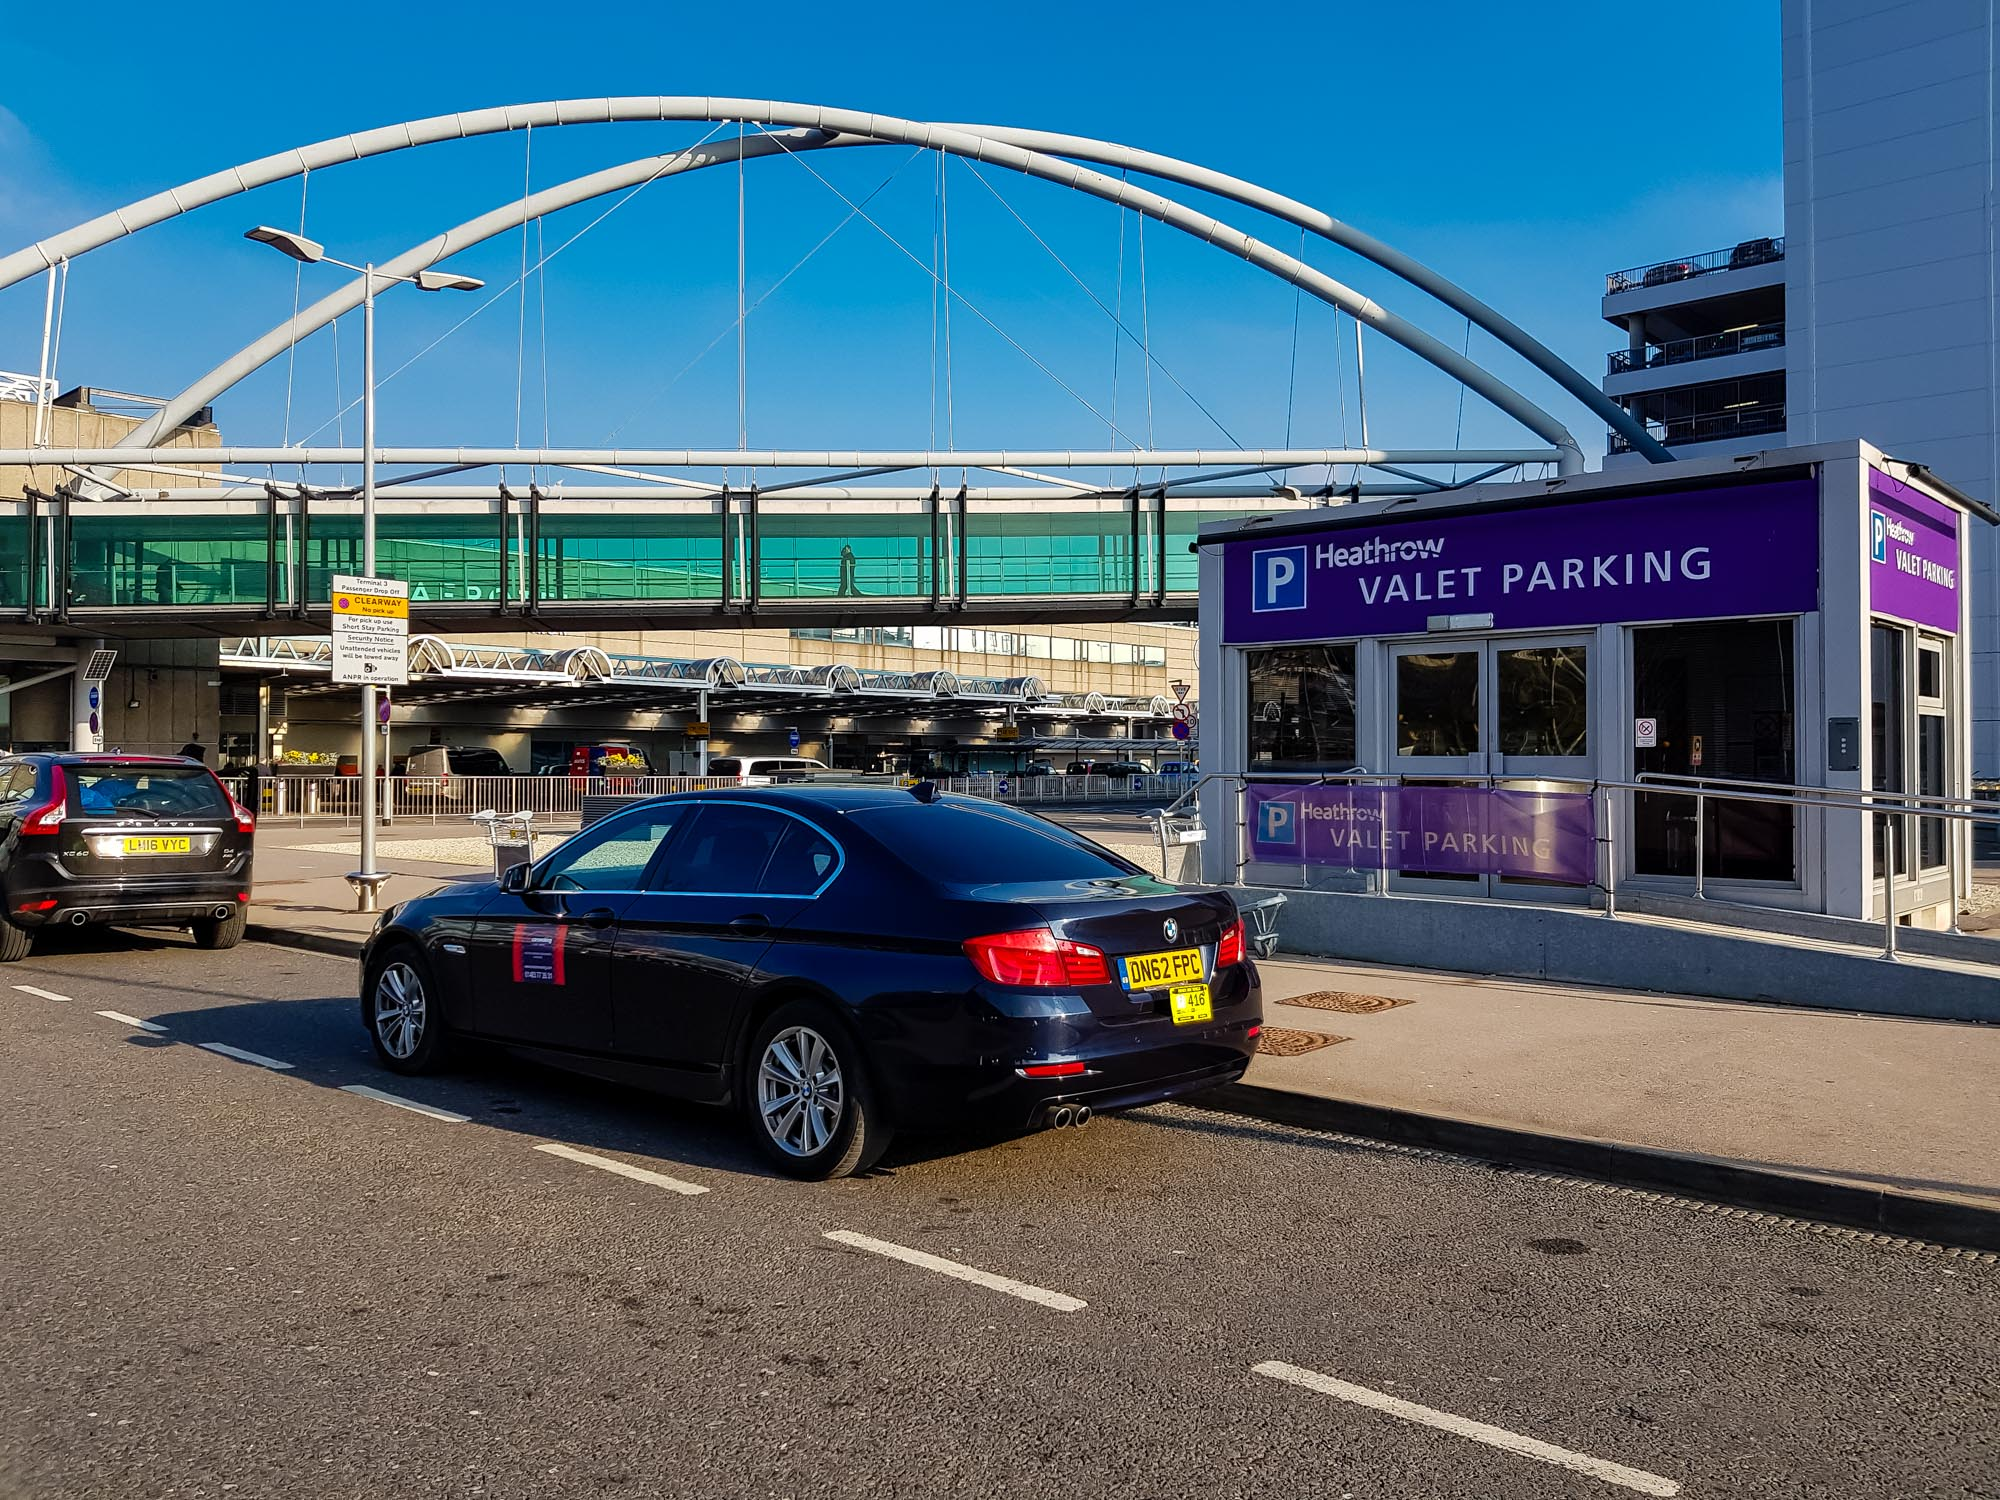 Airport rates from Woking to Gatwick, Heathrow, Stansted, Luton, London